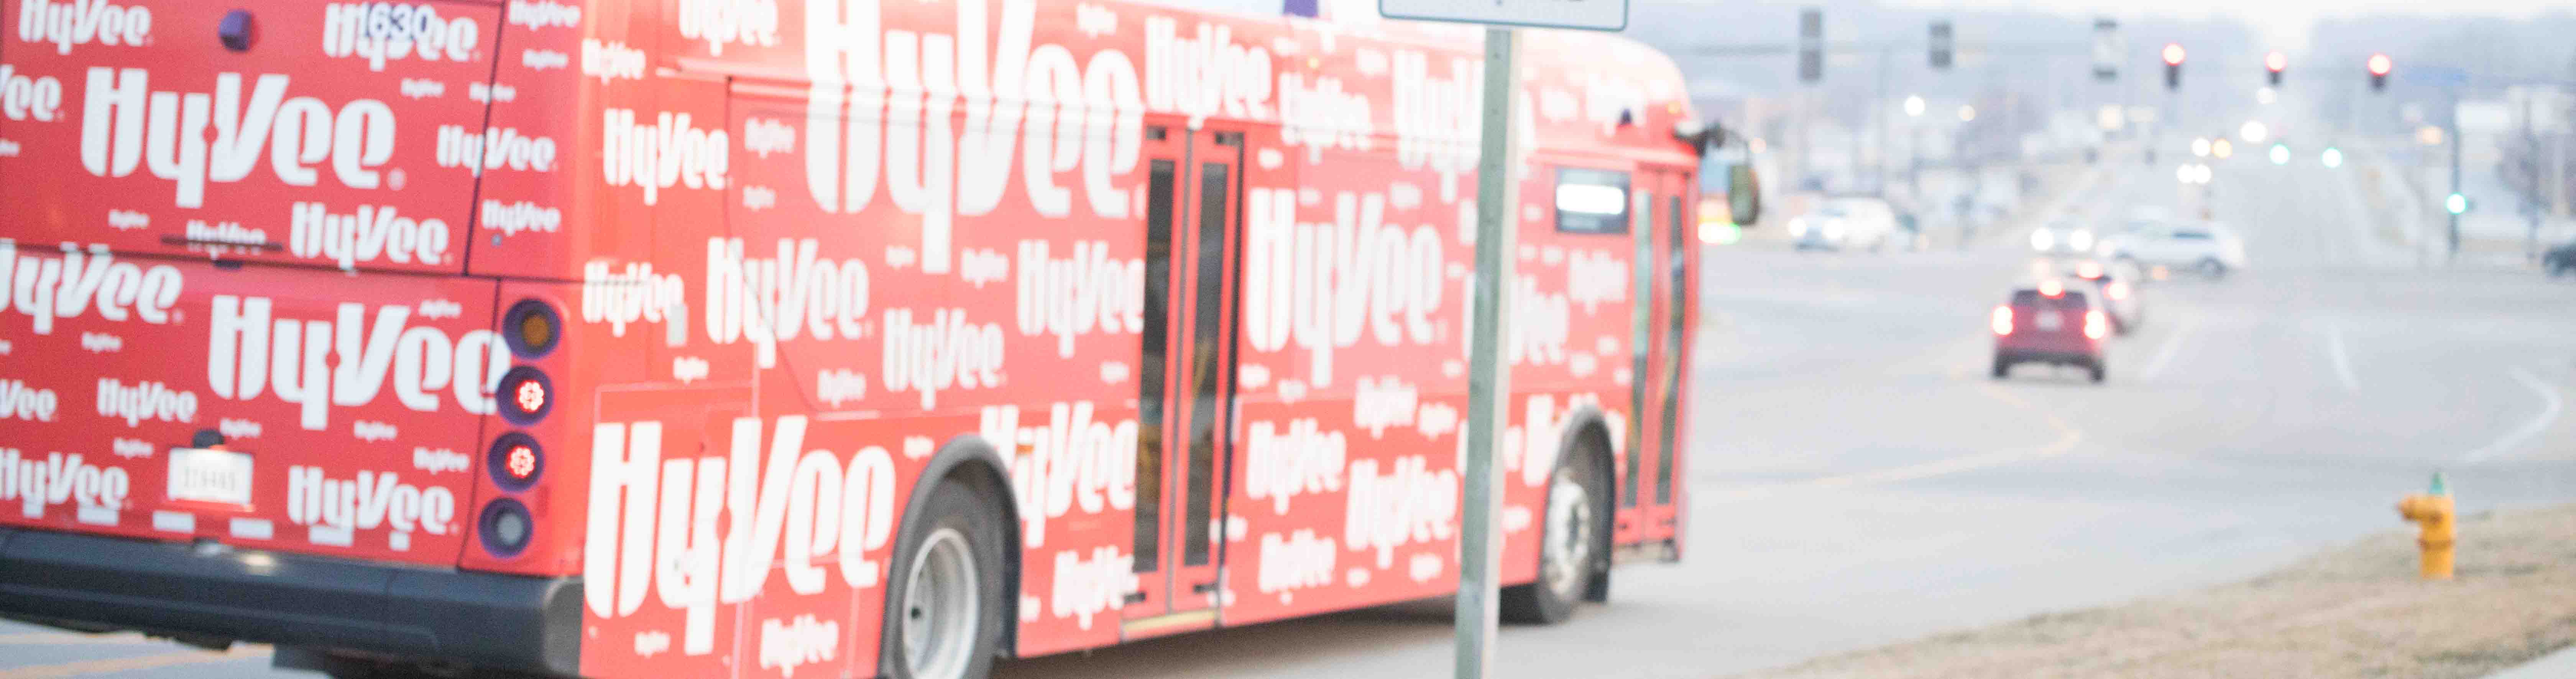 DART and Hy-Vee, Inc. Partner for Shuttle Service